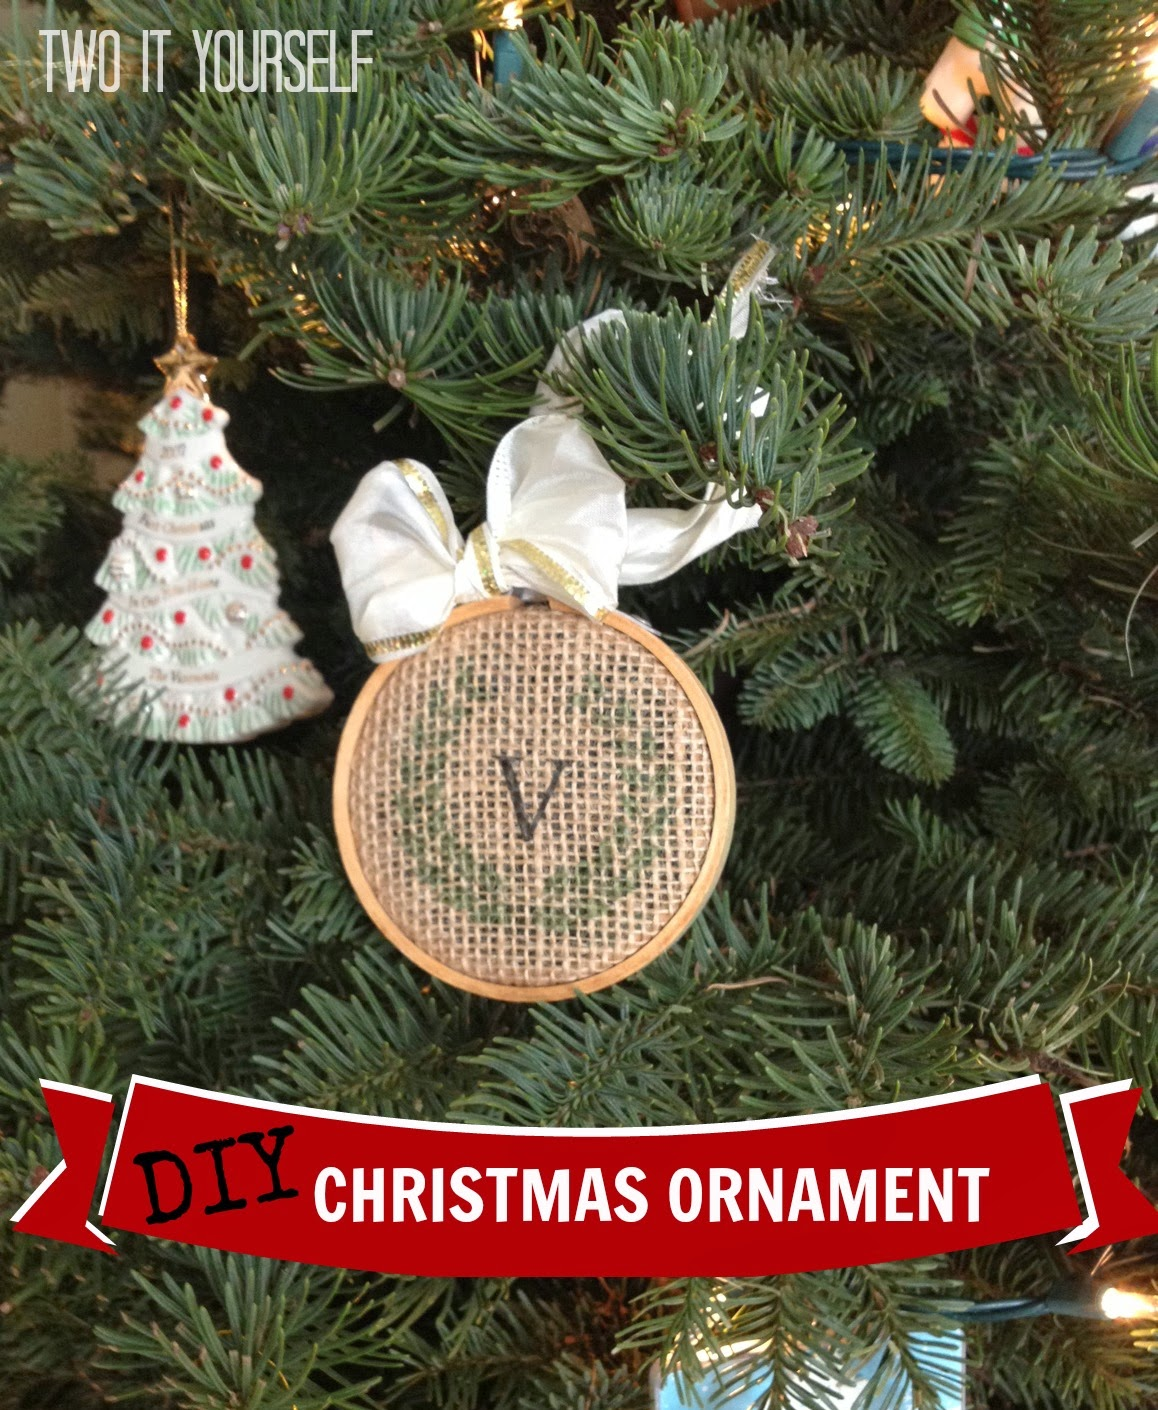 Two It Yourself: {10 Minute} DIY Christmas Ornaments